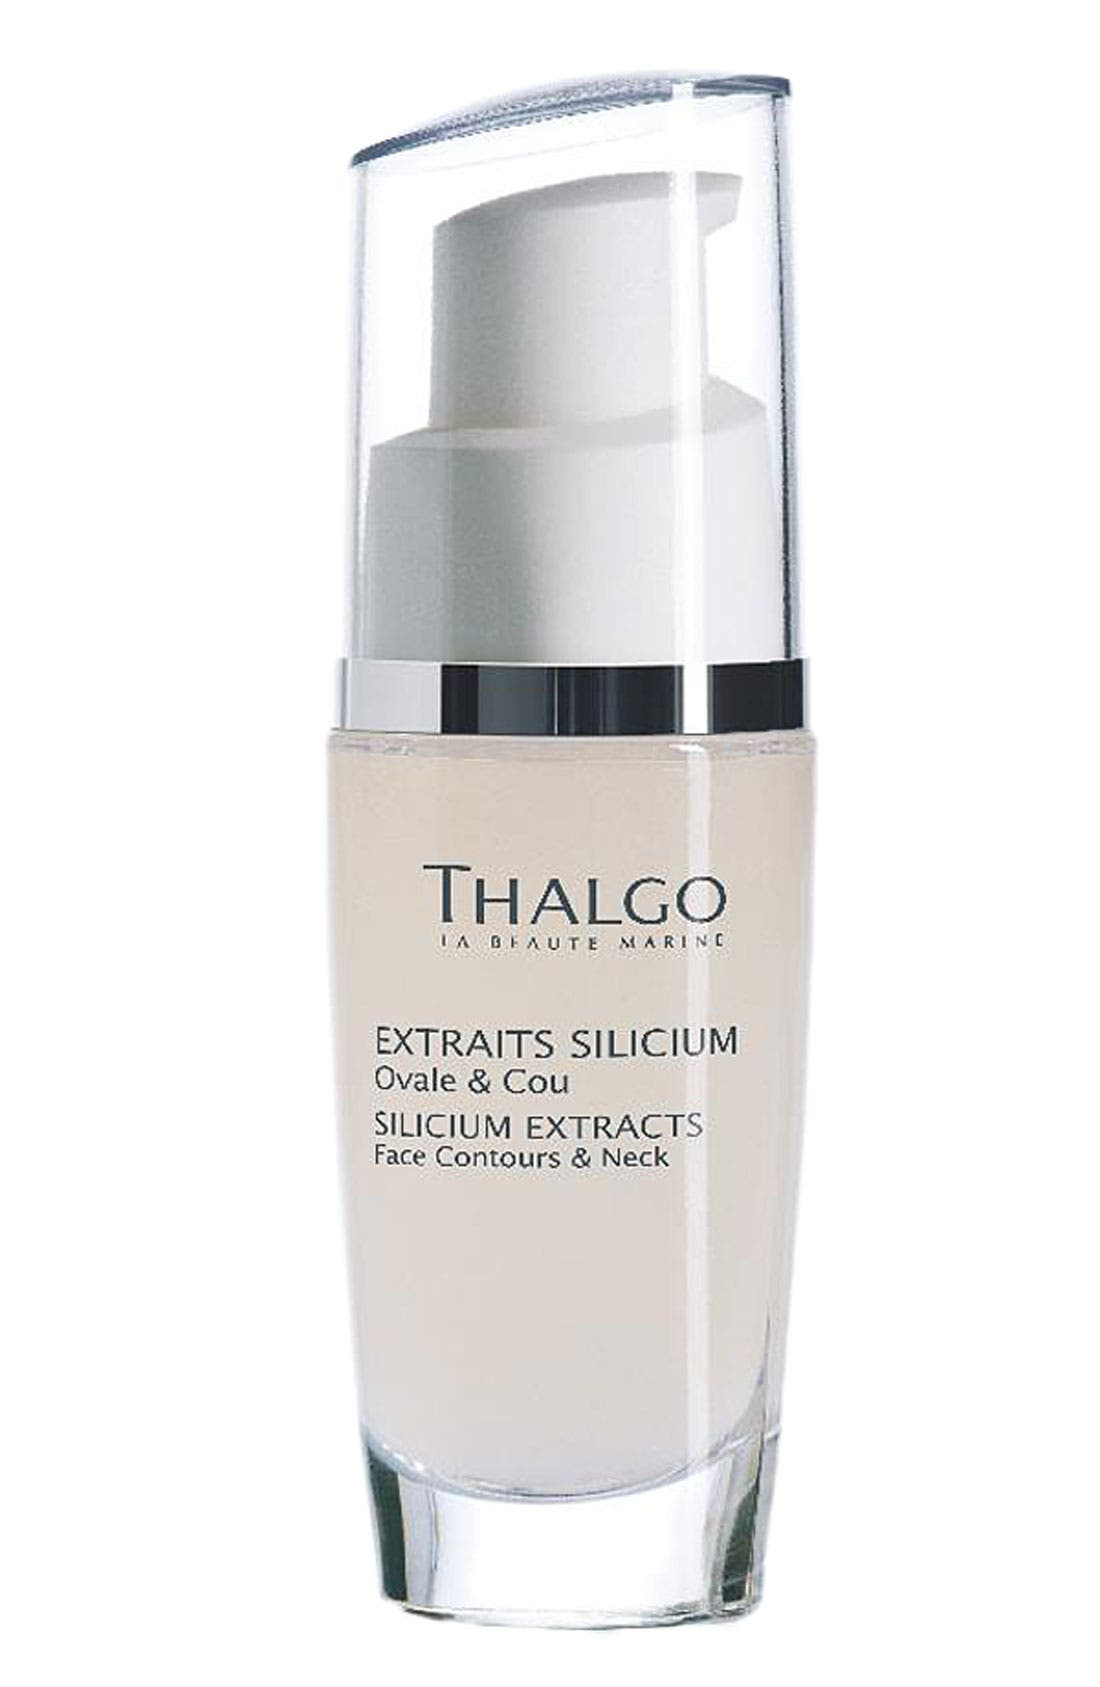 Thalgo 'Silicium' Extracts for Face & Neck